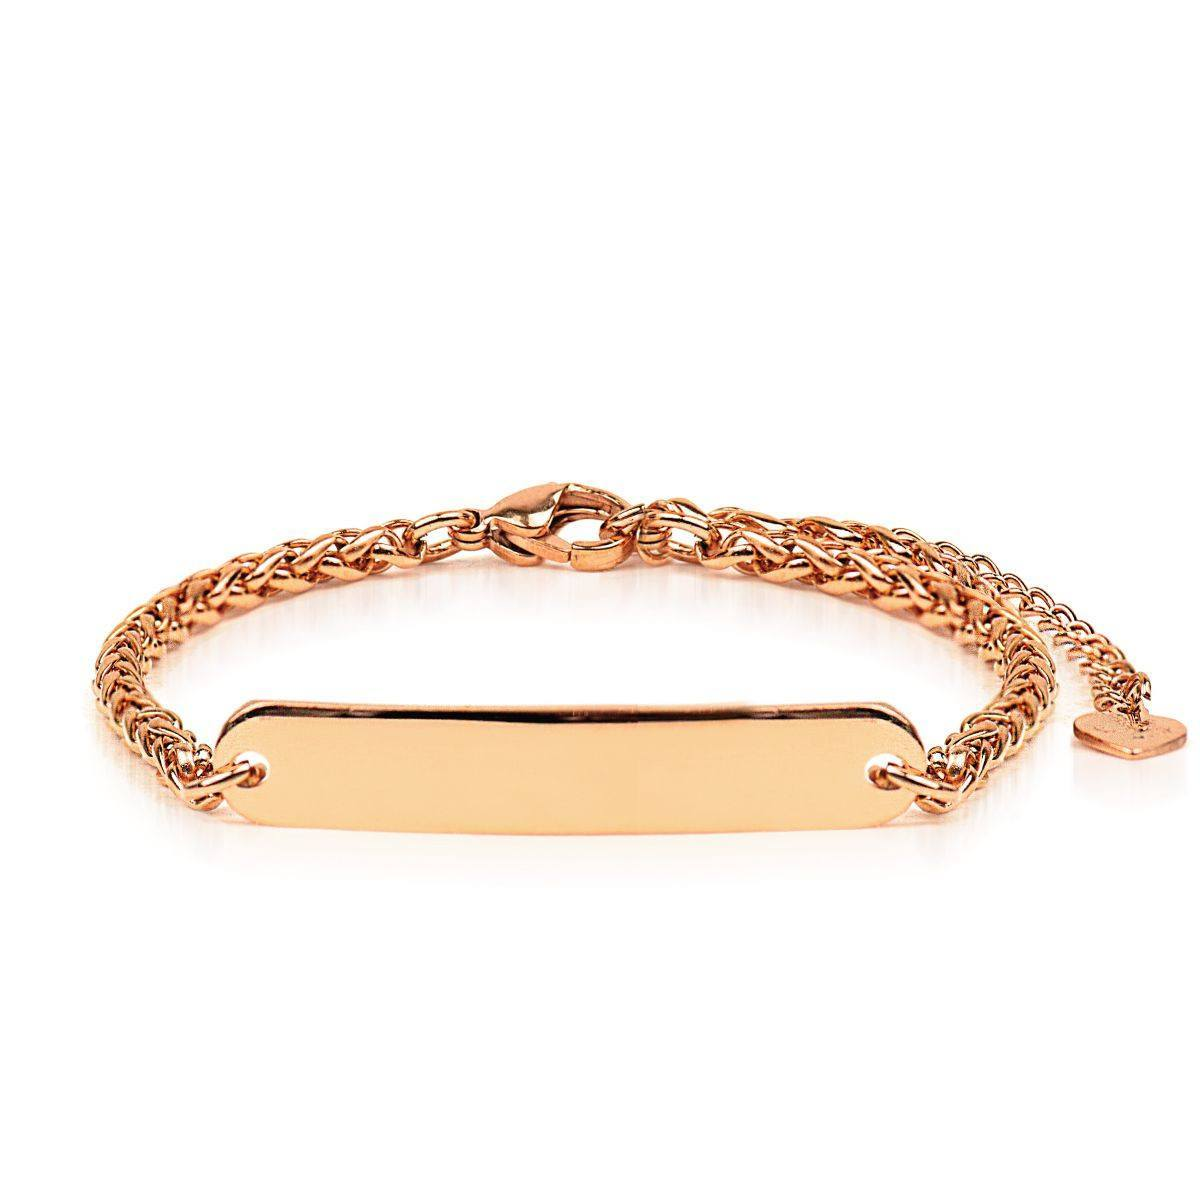 18k Rose Gold | Custom Engravable | Kindred Spirits Chain Bracelet